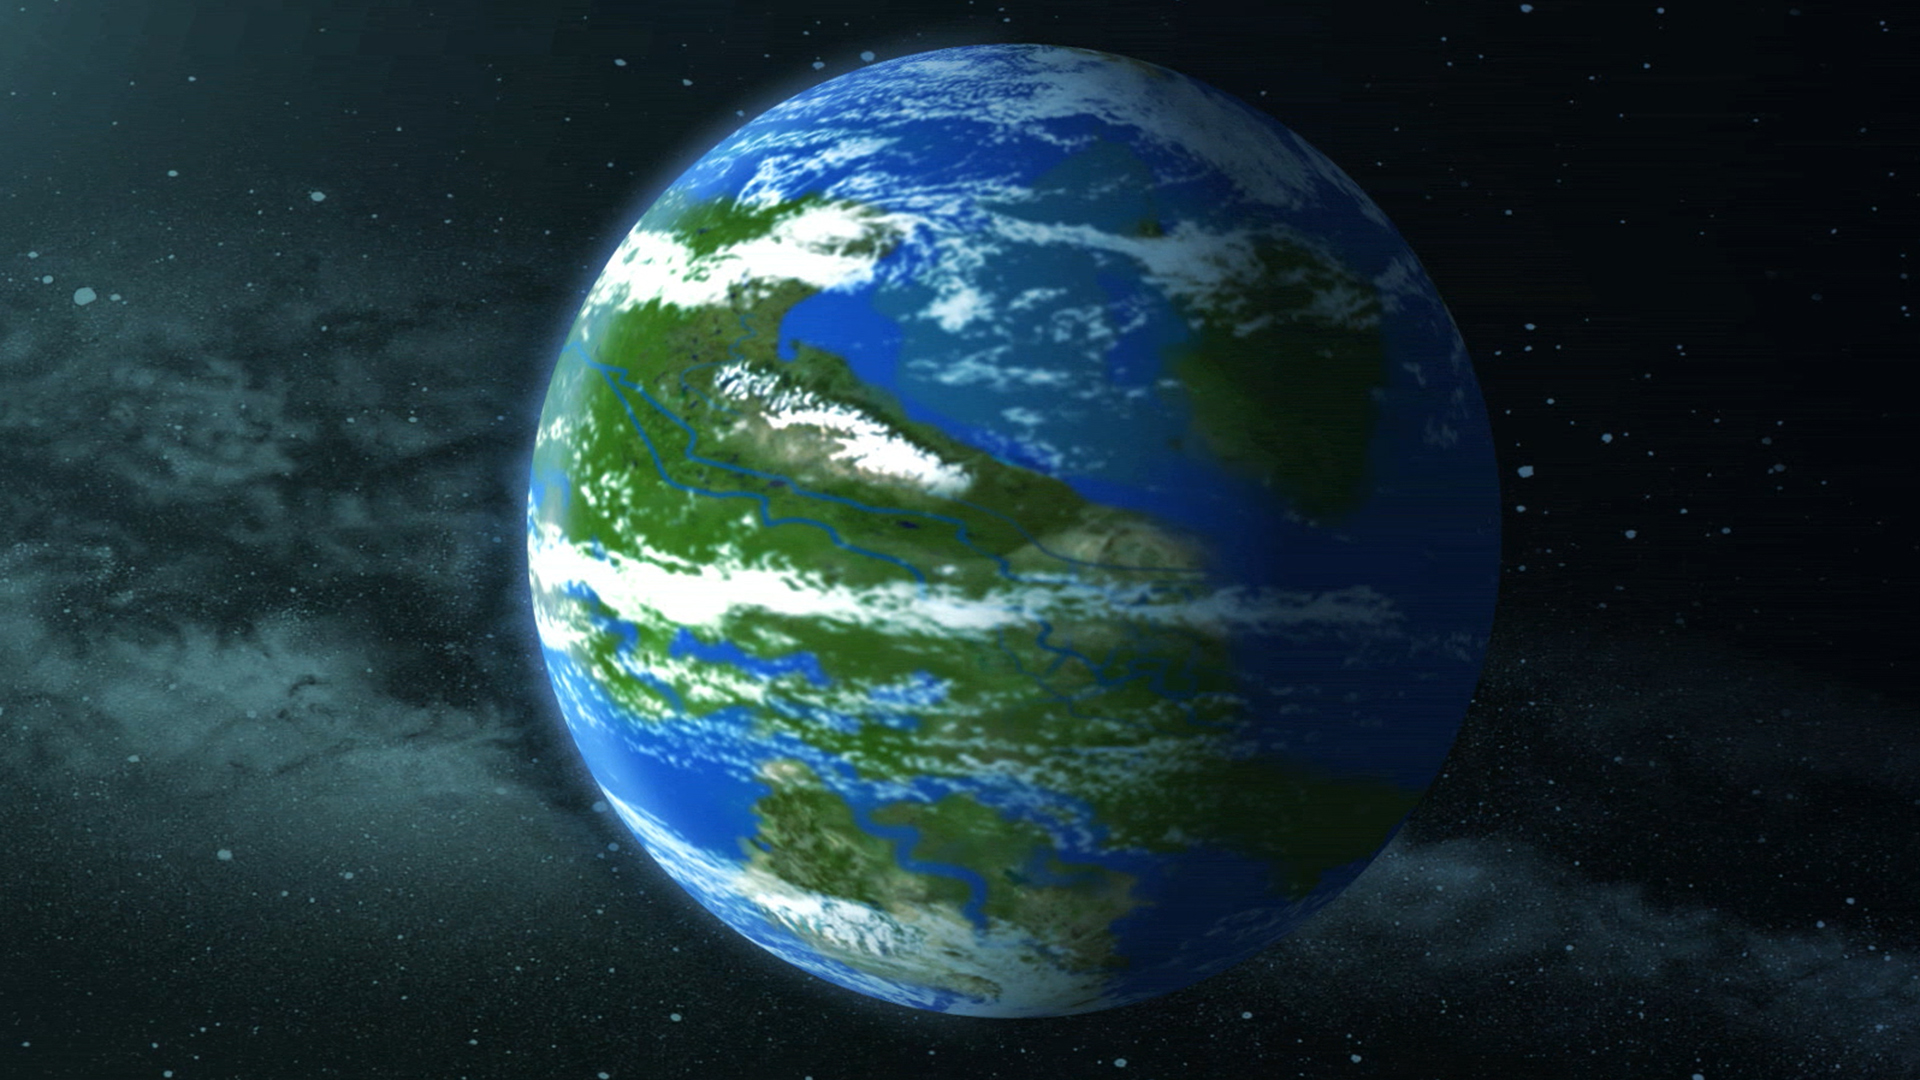 planets that look like earth - HD1920×1080